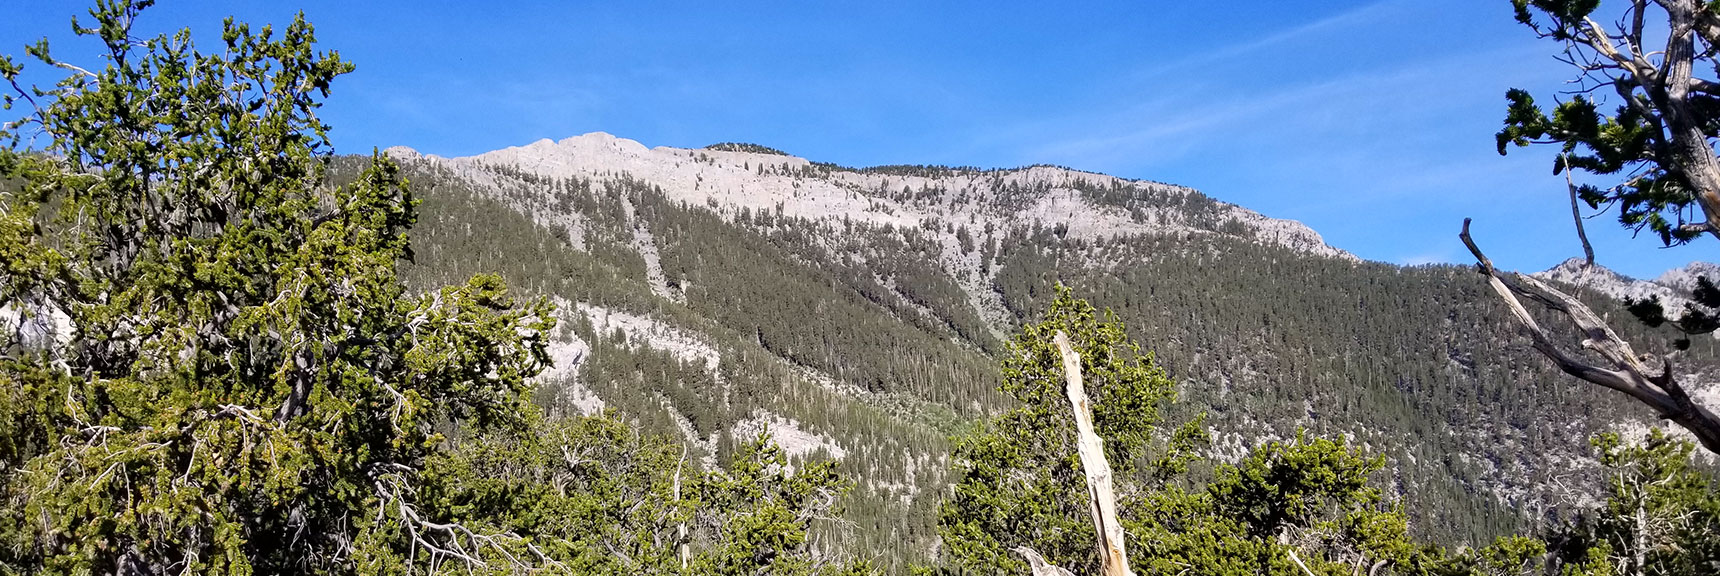 Eastern Side of Mummy Mountain Viewed from the First Plateau on the North Loop Trail in Mt. Charleston Wilderness, Nevada